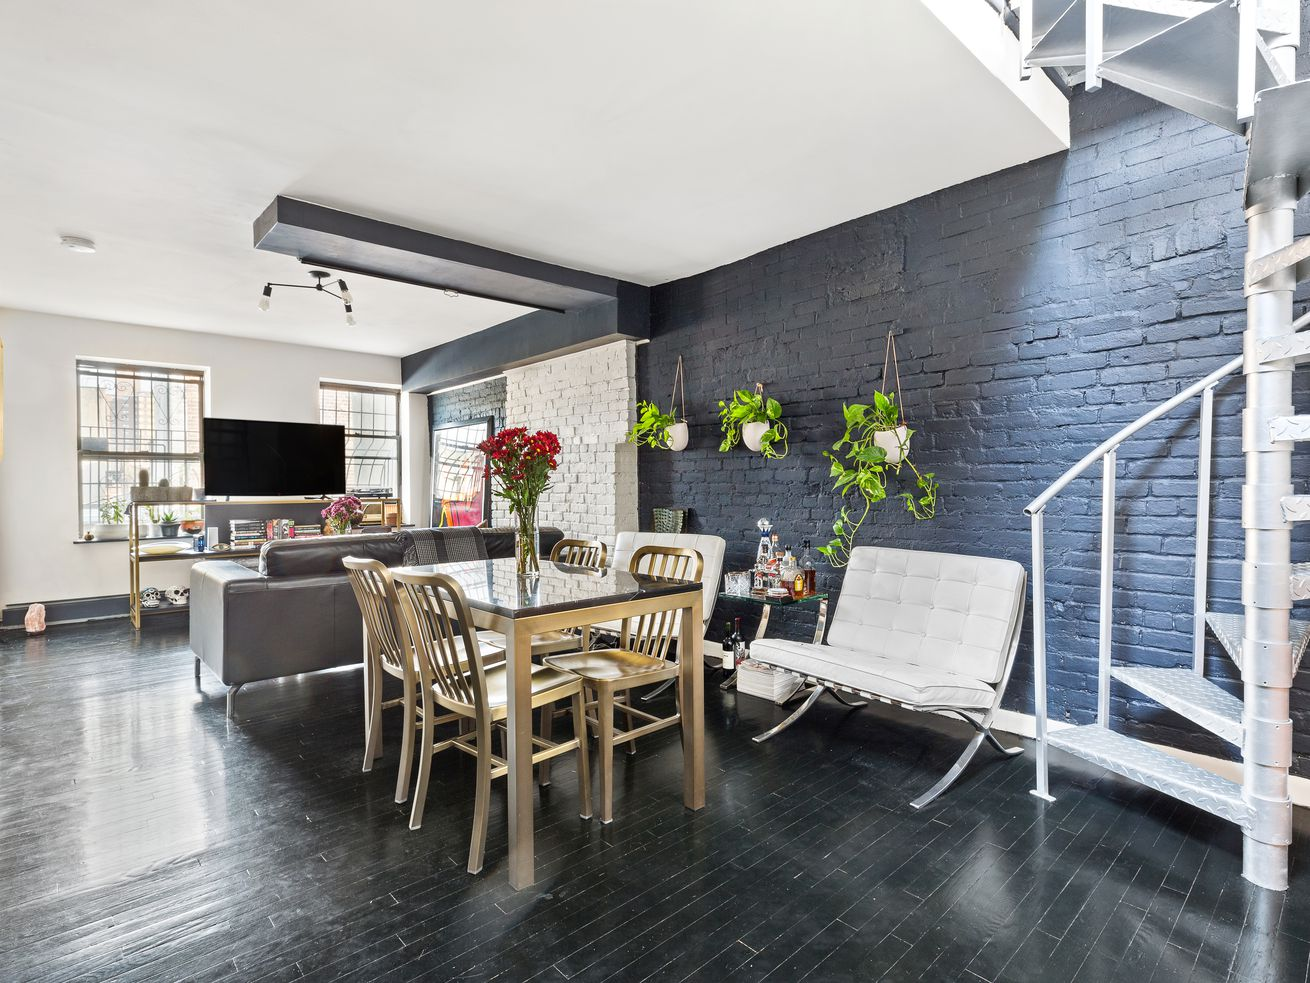 A living and dining areas with a table, several seating areas, planters, exposed brick, and a spiral staircase.